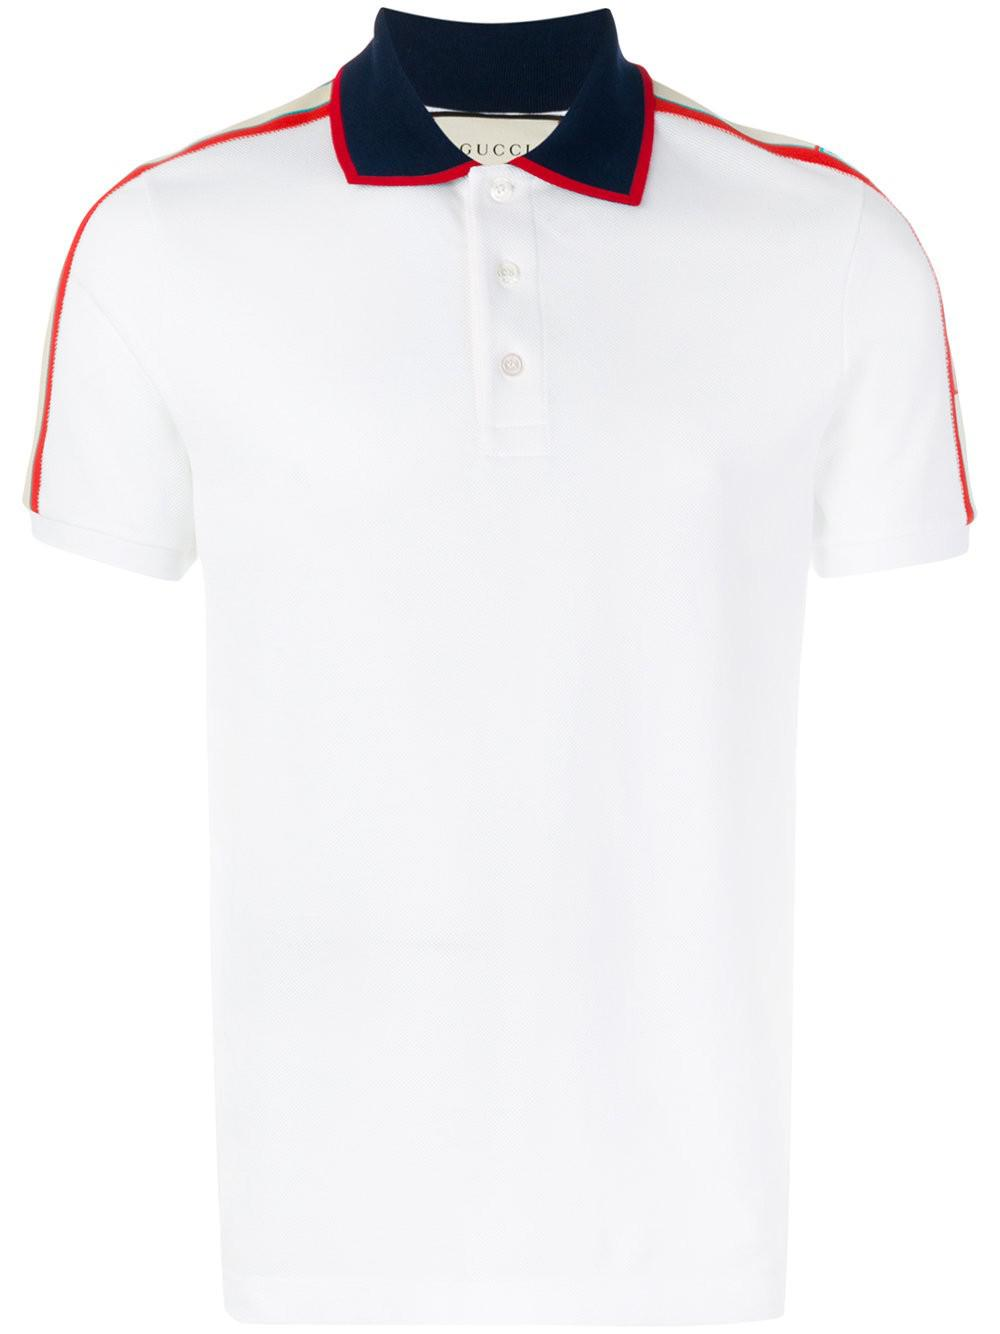 749d73726935 Lyst - Gucci T-shirt Polo in White for Men